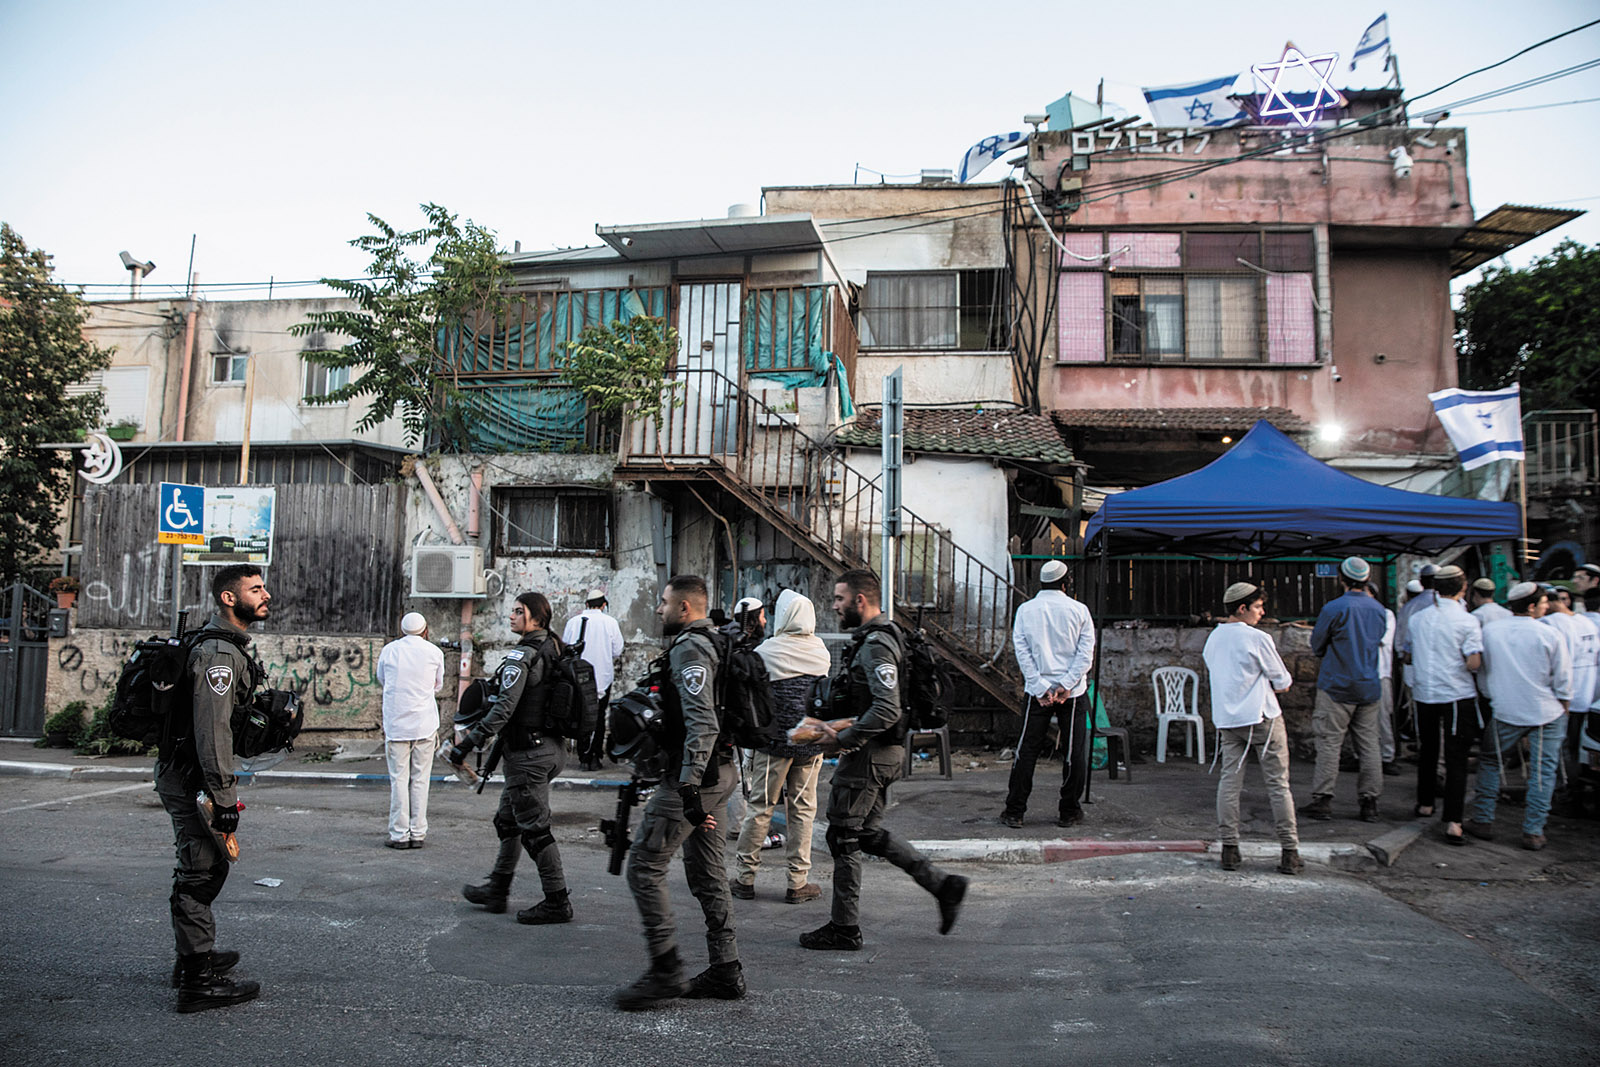 Israeli border police and settlers outside a residence that was taken over from a Palestinian family in the Sheikh Jarrah neighborhood of East Jerusalem